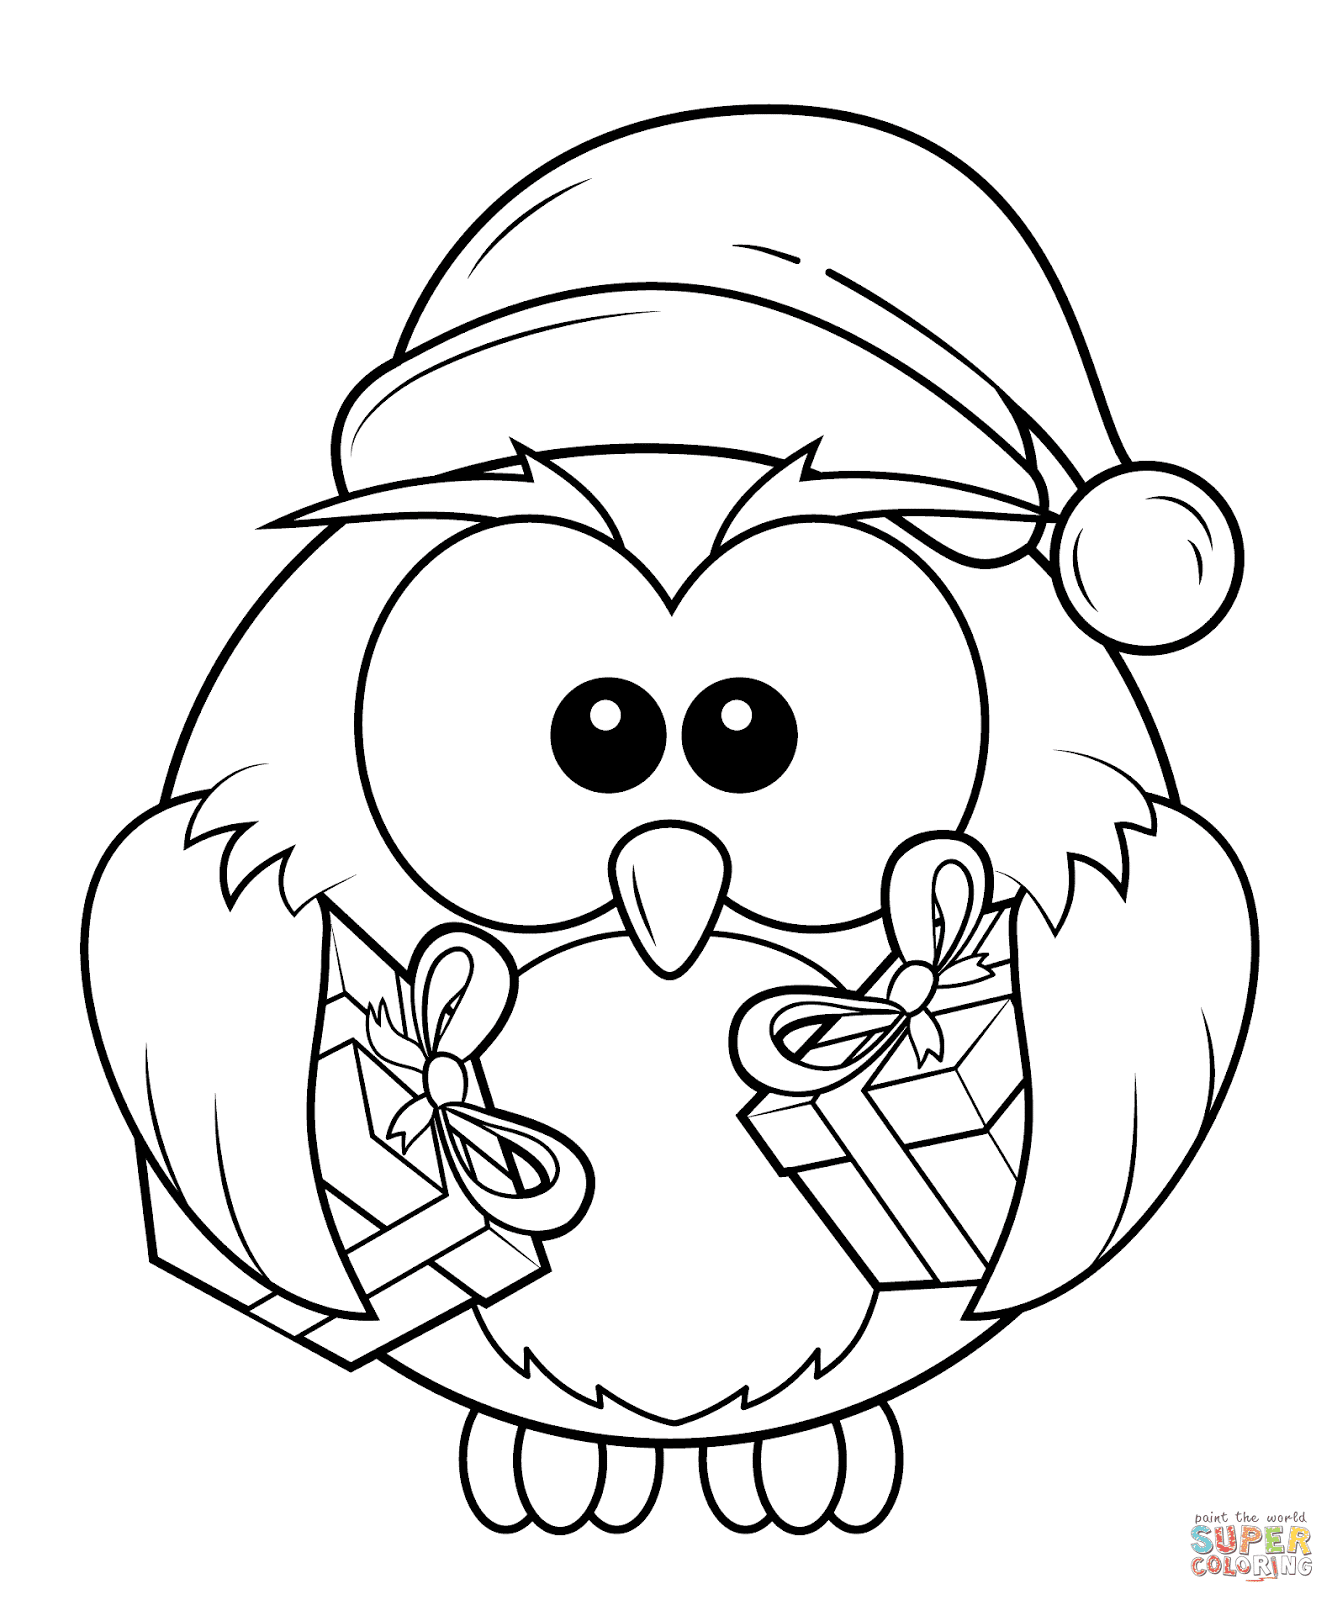 Top 10 cute christmas owl coloring page for kids for Photo to coloring page